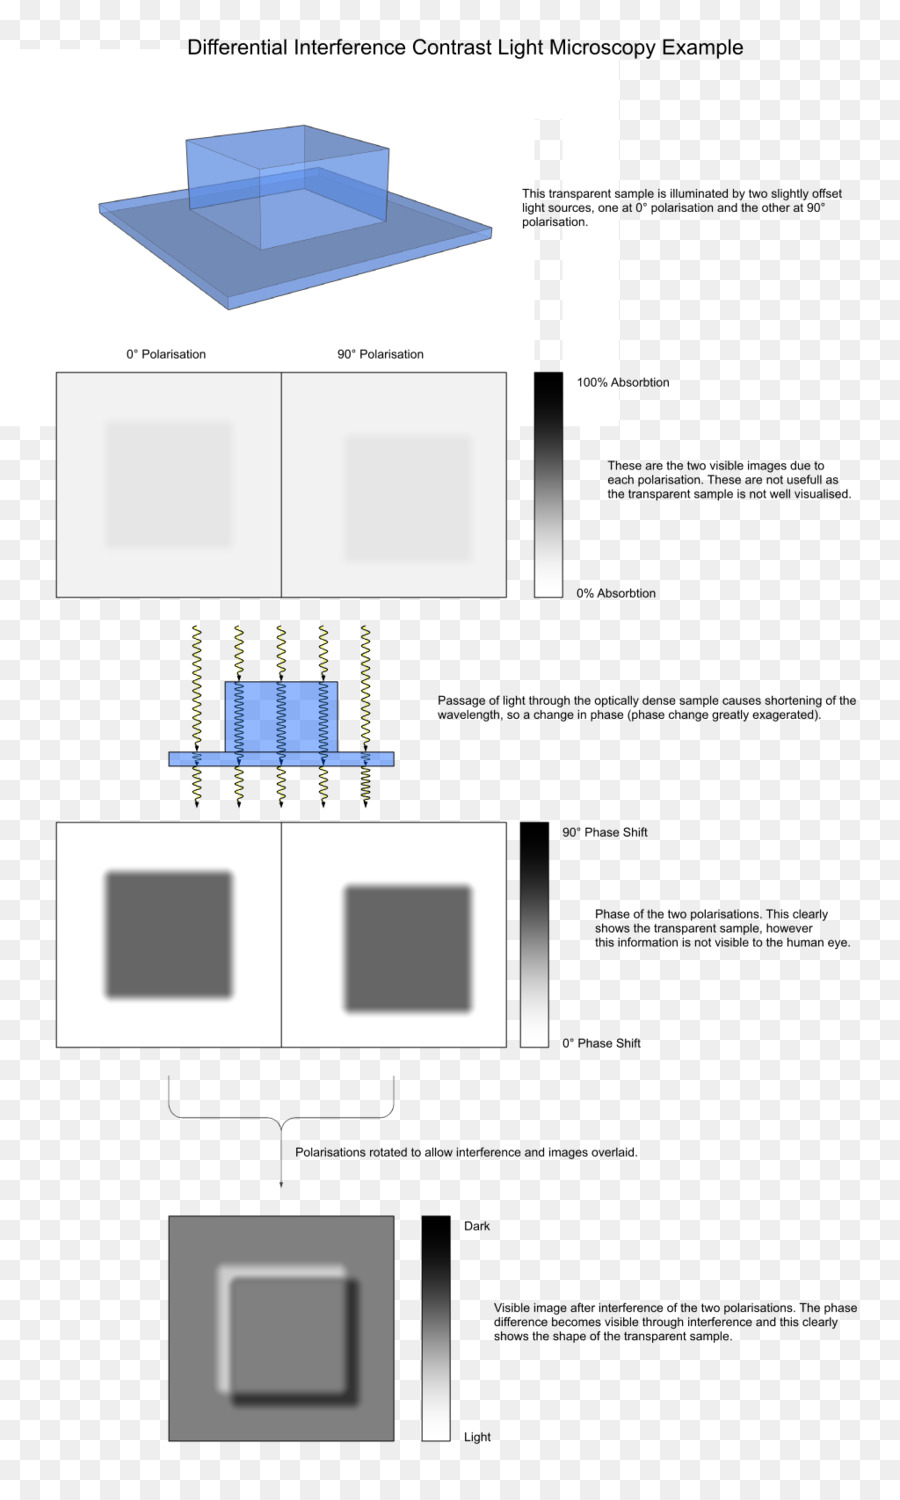 hight resolution of light differential interference contrast microscopy microscopy text diagram png